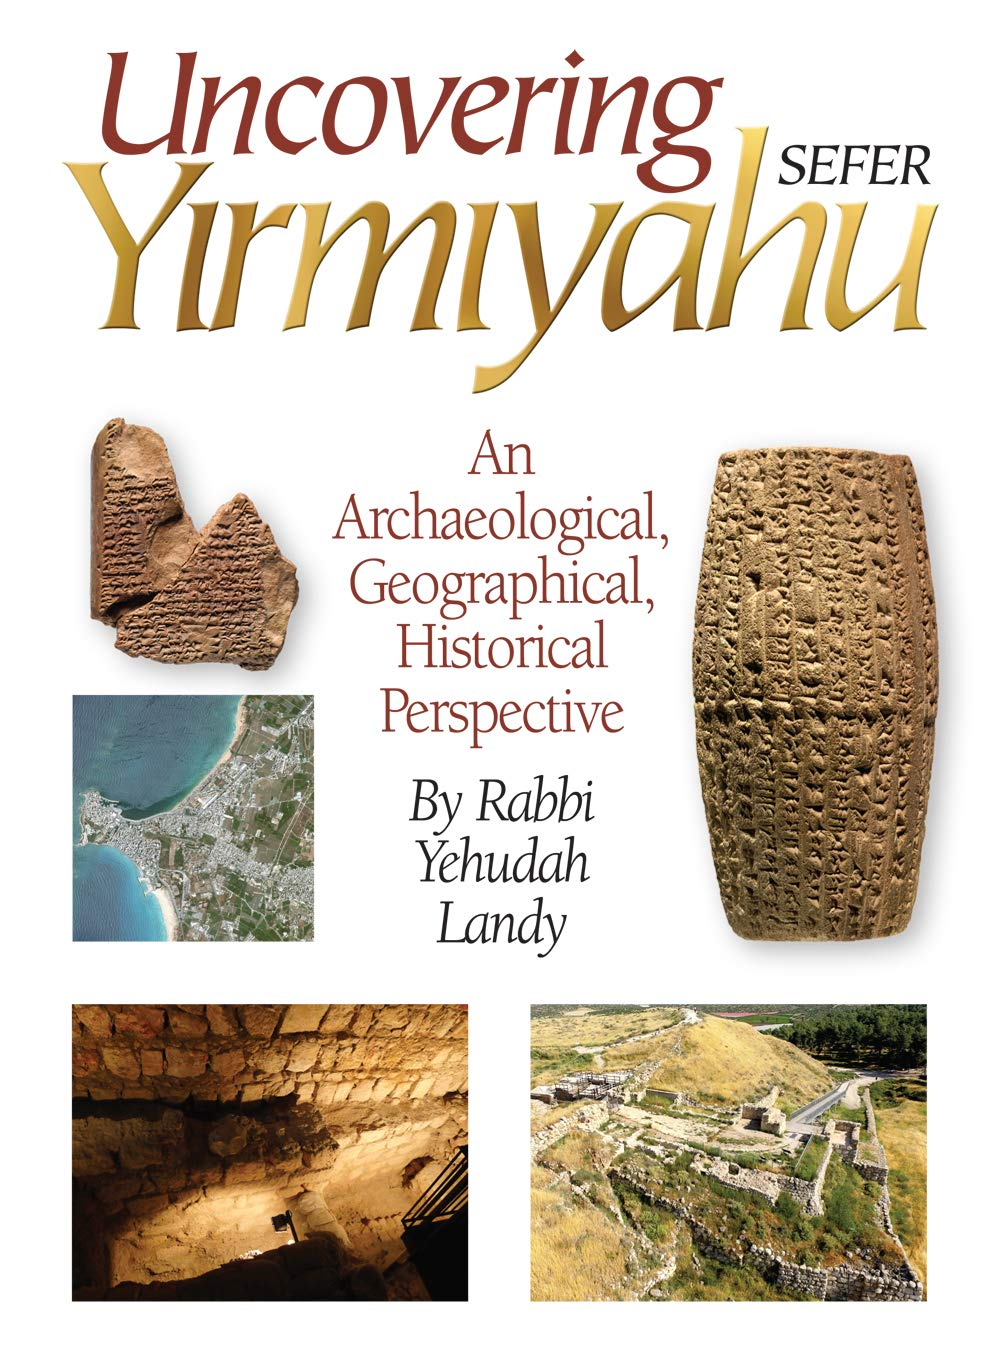 Uncovering Sefer Yirmiyahu: An Archaeological, Geographical, Historical  Perspective: Rabbi Yehuda Landy: 9781680254075: Amazon.com: Books